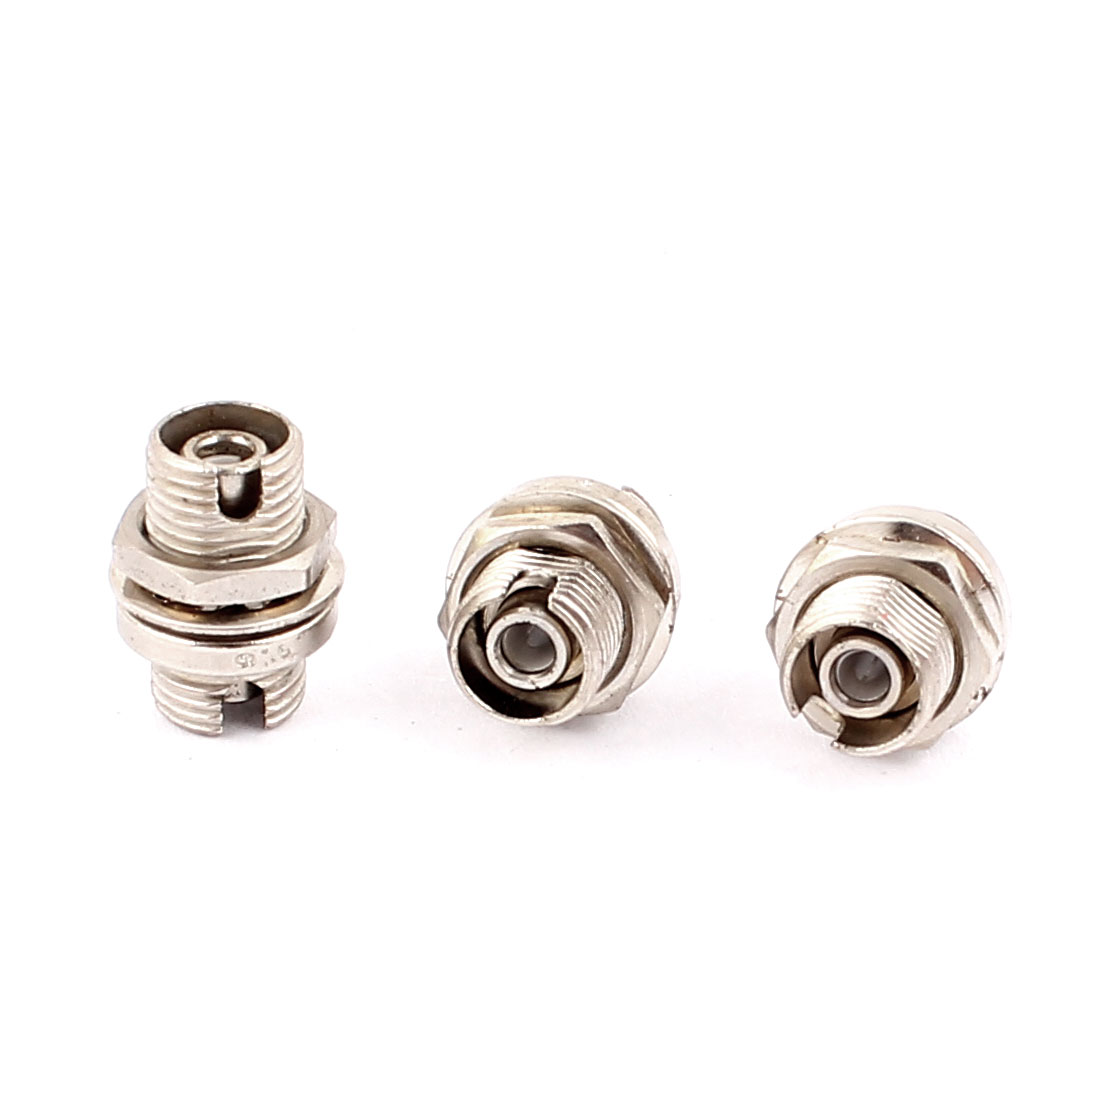 3 Pcs Small D type FC-FC Fibre Coupling Flange Connectors Optical Fiber Adapters